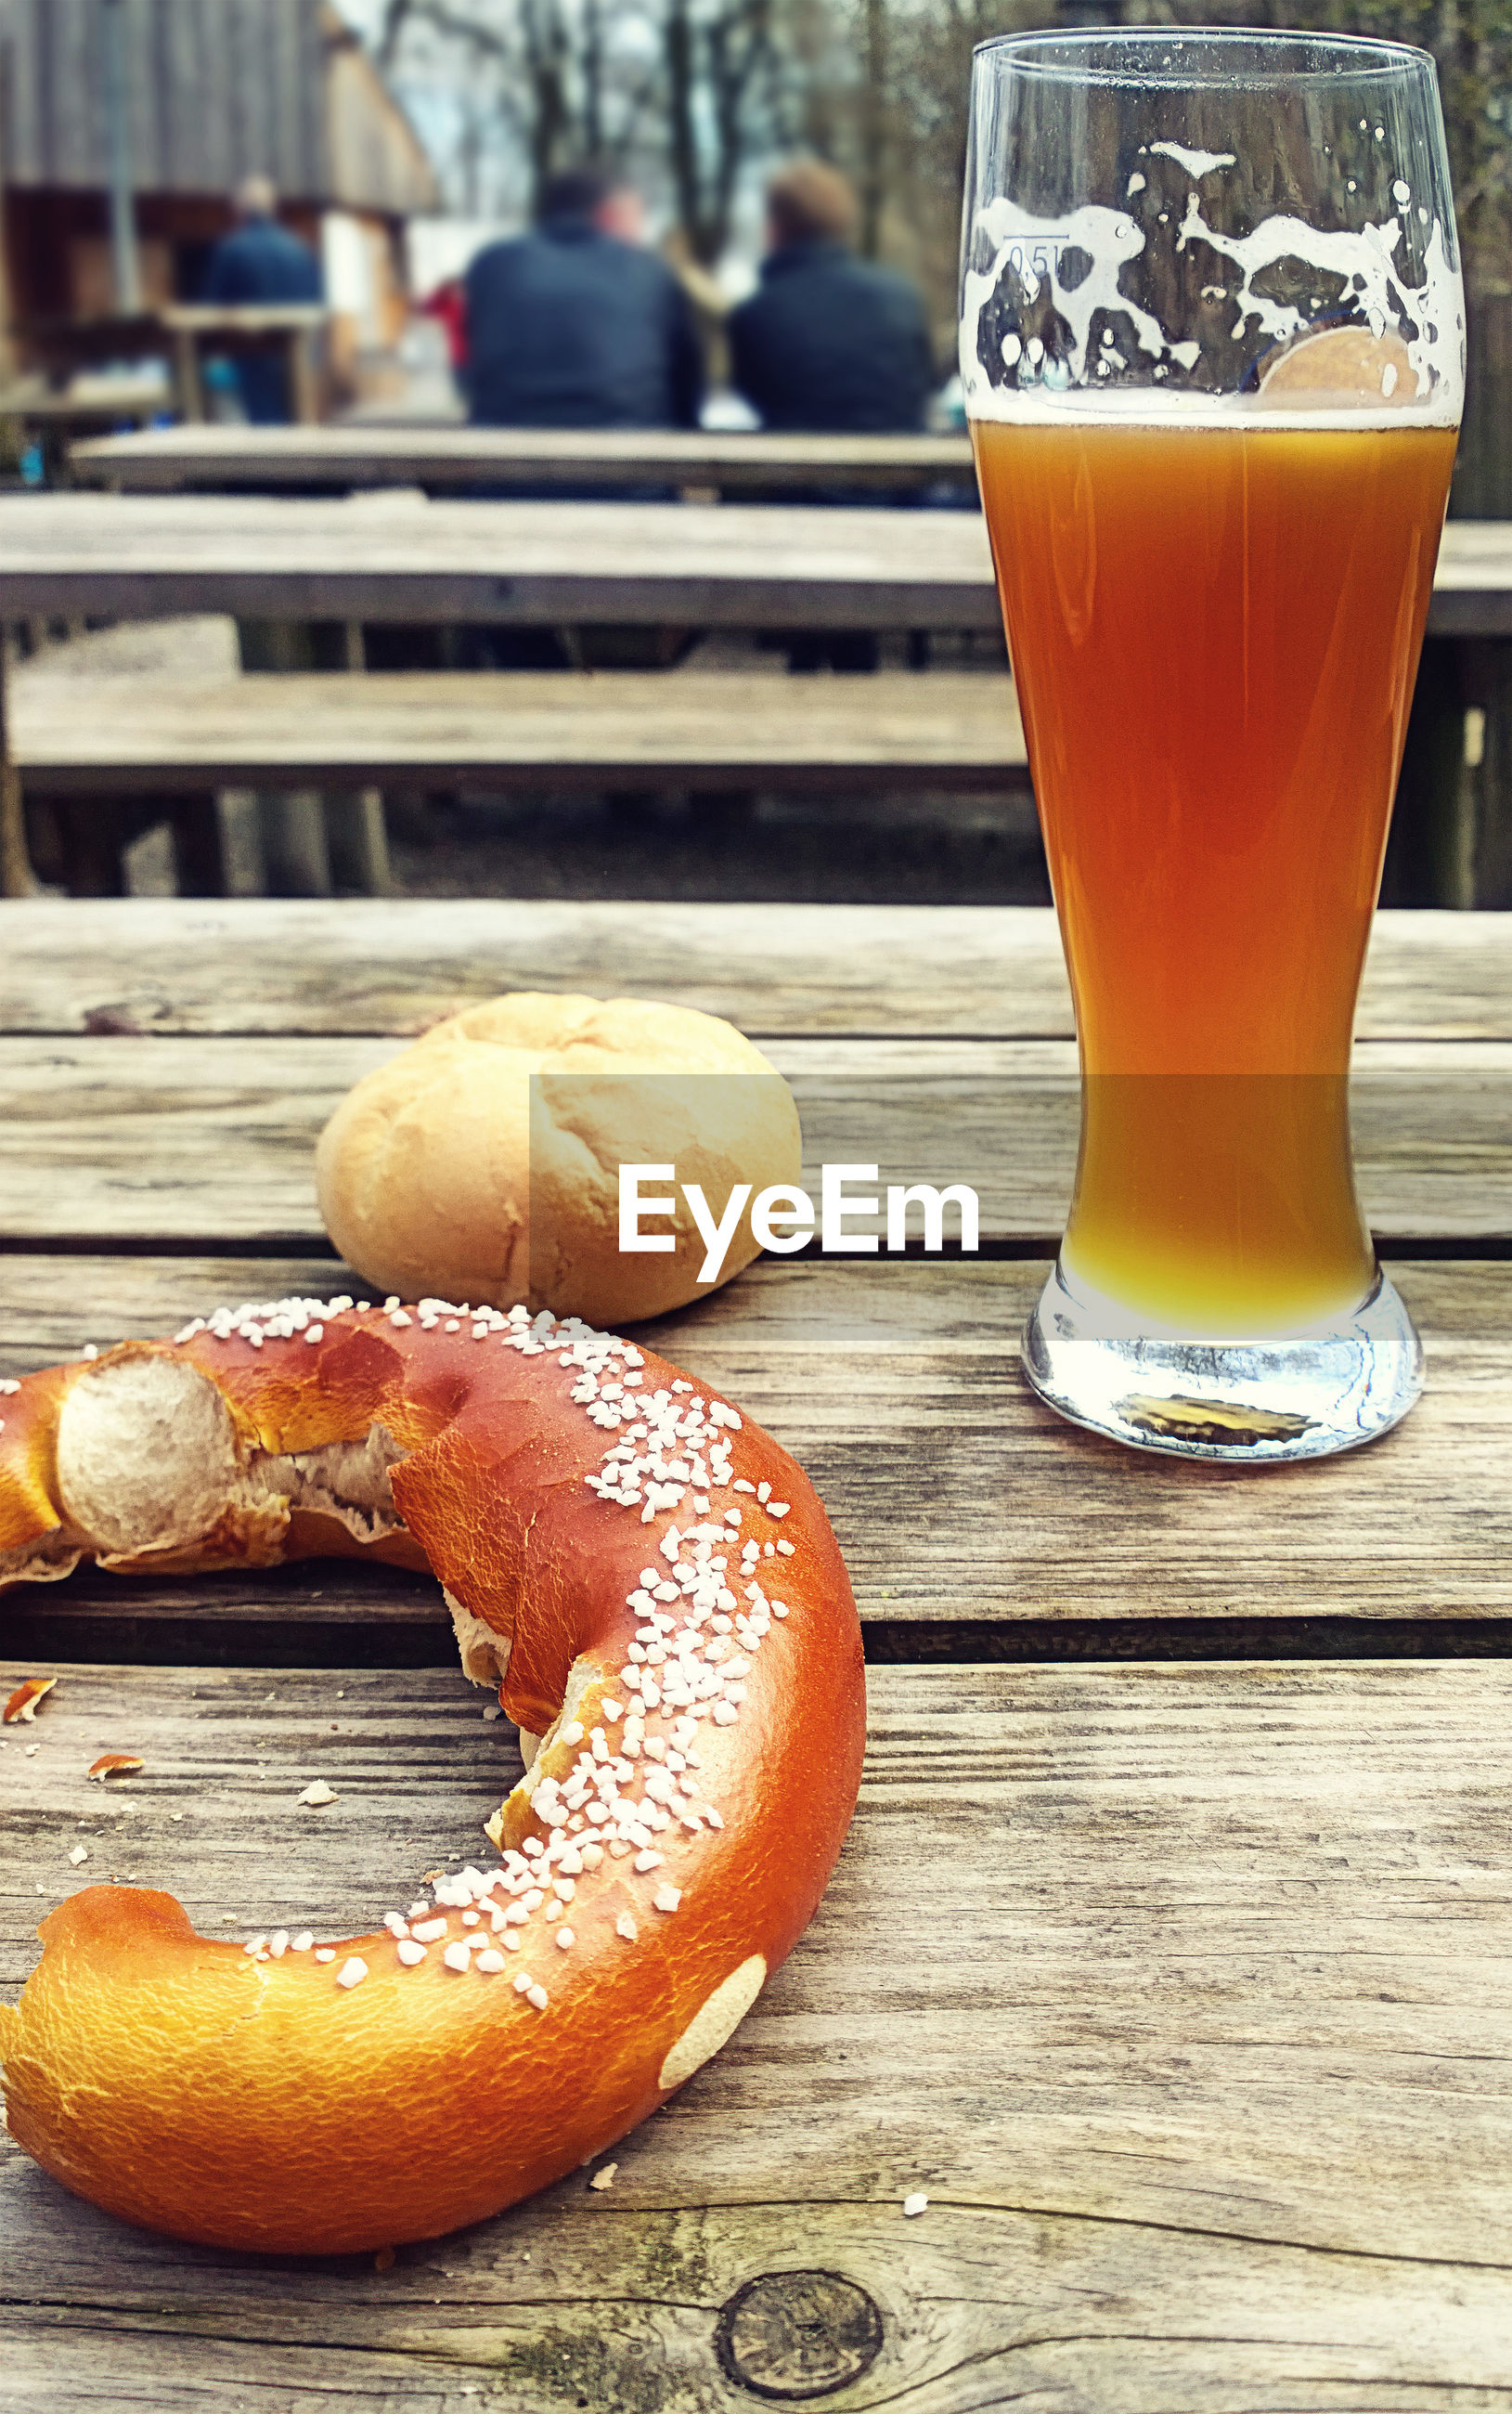 food and drink, drink, freshness, table, refreshment, food, glass, beer, still life, drinking glass, beer glass, focus on foreground, wood - material, beer - alcohol, close-up, household equipment, incidental people, orange color, ready-to-eat, snack, breakfast, temptation